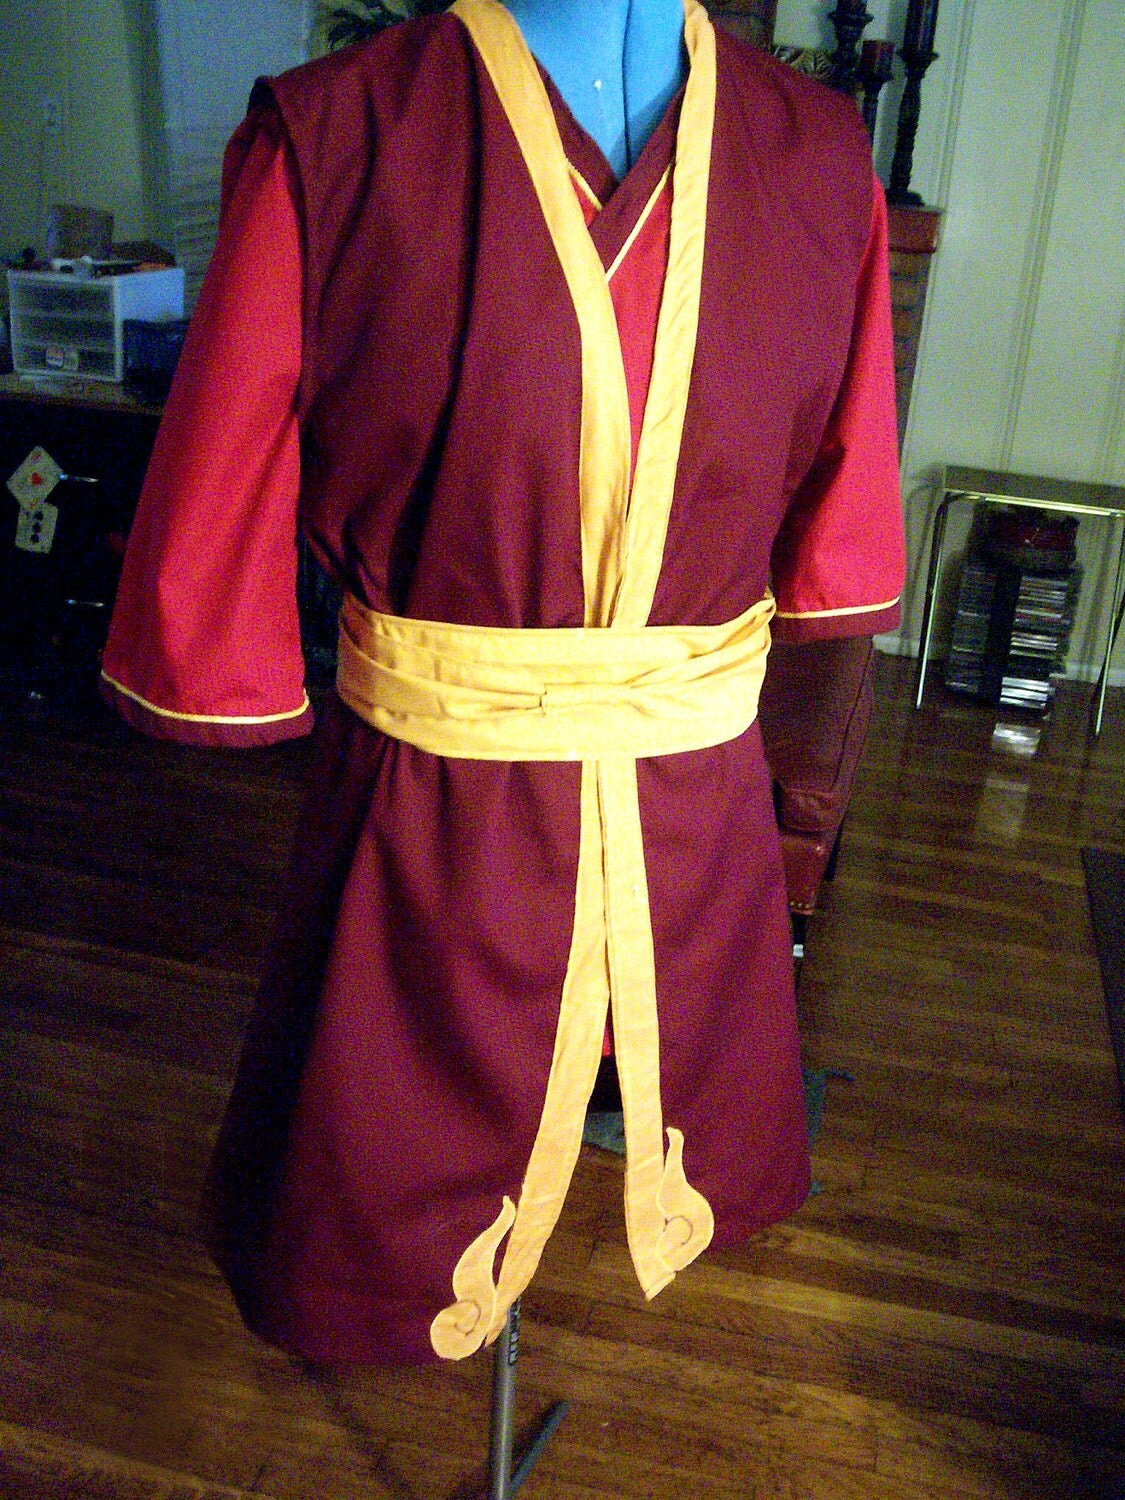 Prince Zuko Cosplay Costume Avatar The Last by cleighcreations: https://www.etsy.com/listing/91817744/prince-zuko-cosplay-costume...